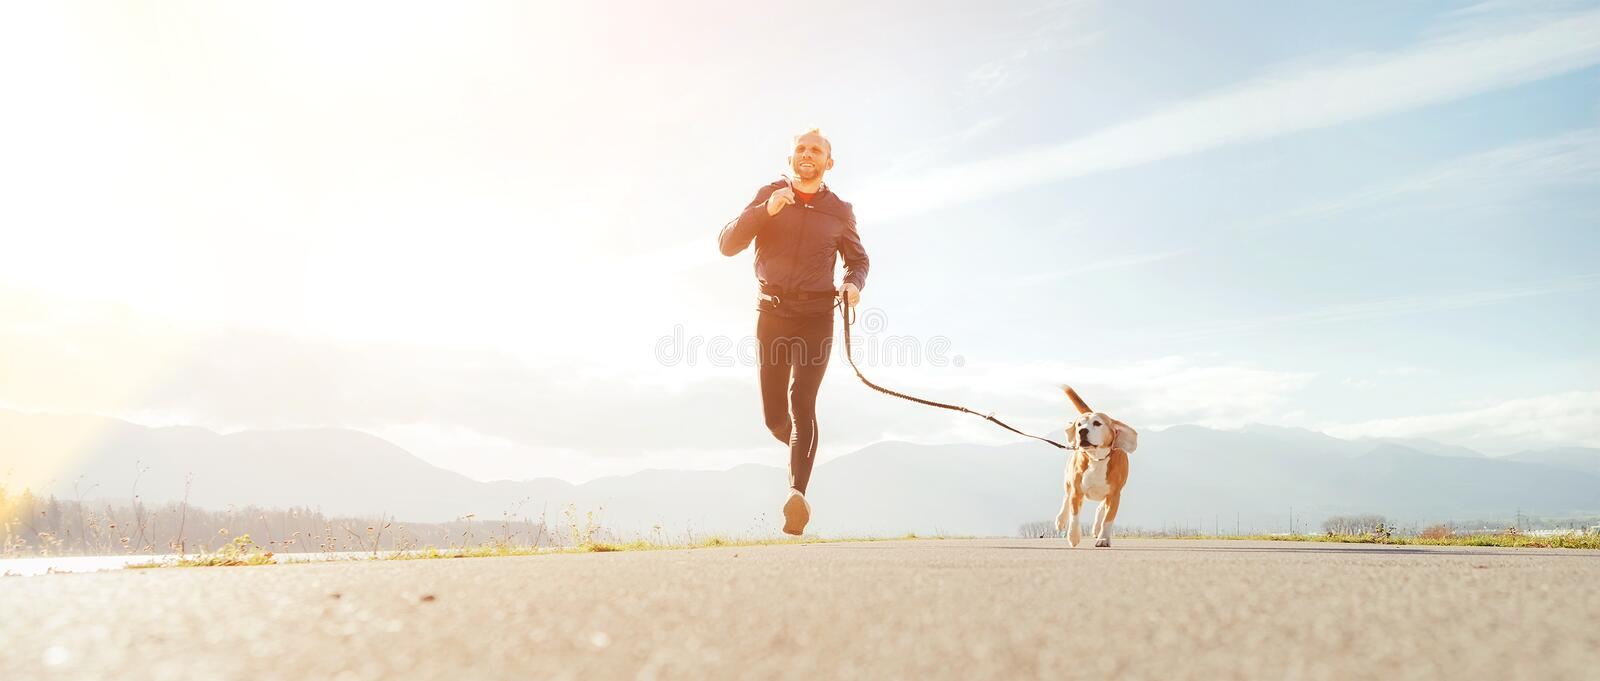 Jogging man with his dog in the morning. Active healthy lifestyle concept image stock image